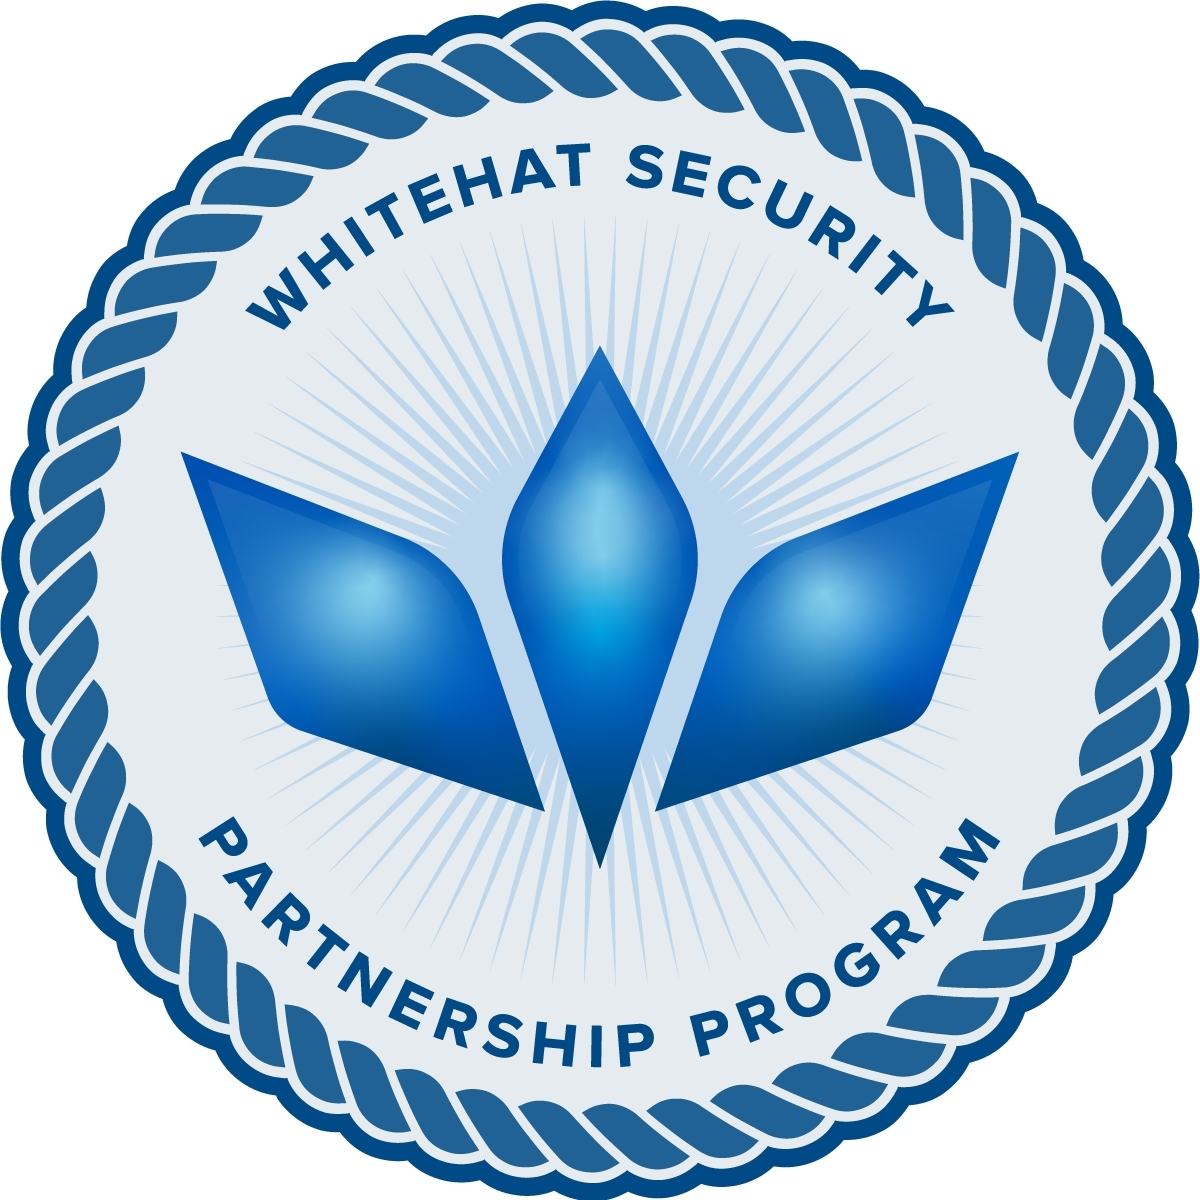 New WhiteHat Security Partnership Program Enables Solution Providers to  Drive Strong Gross Profits Leveraging State-of-the-art DevSecOps Tools  b5cd19de170c